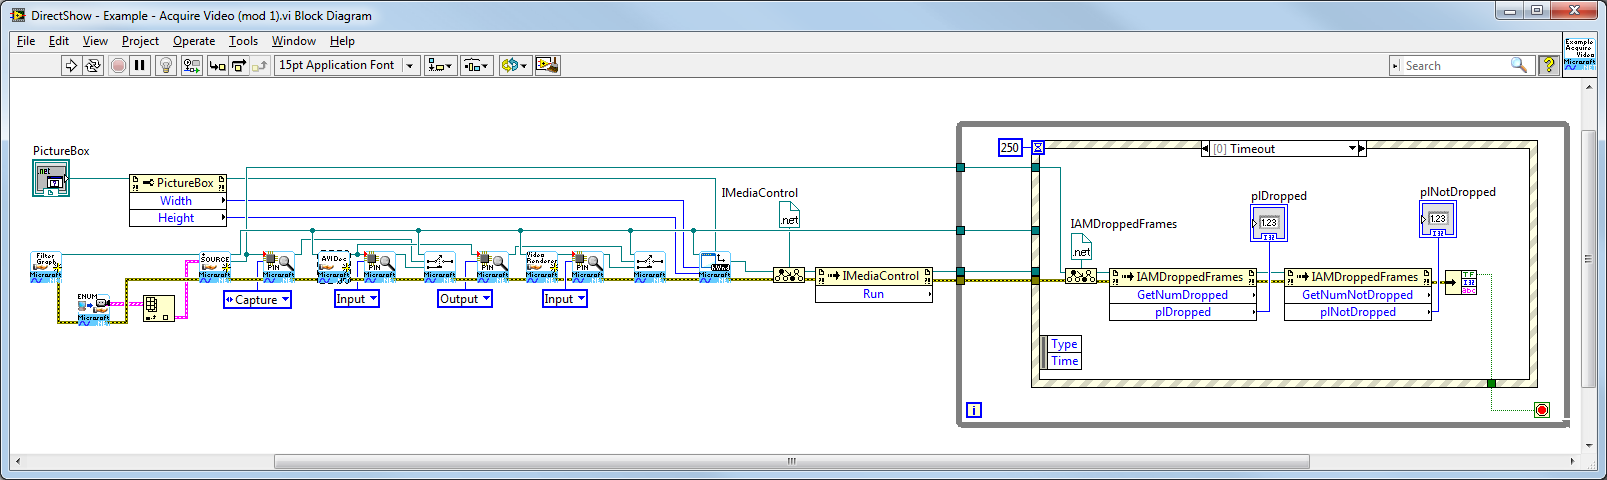 DirectShow  NET LabVIEW SDK (Video, Audio, IP streams) - NI